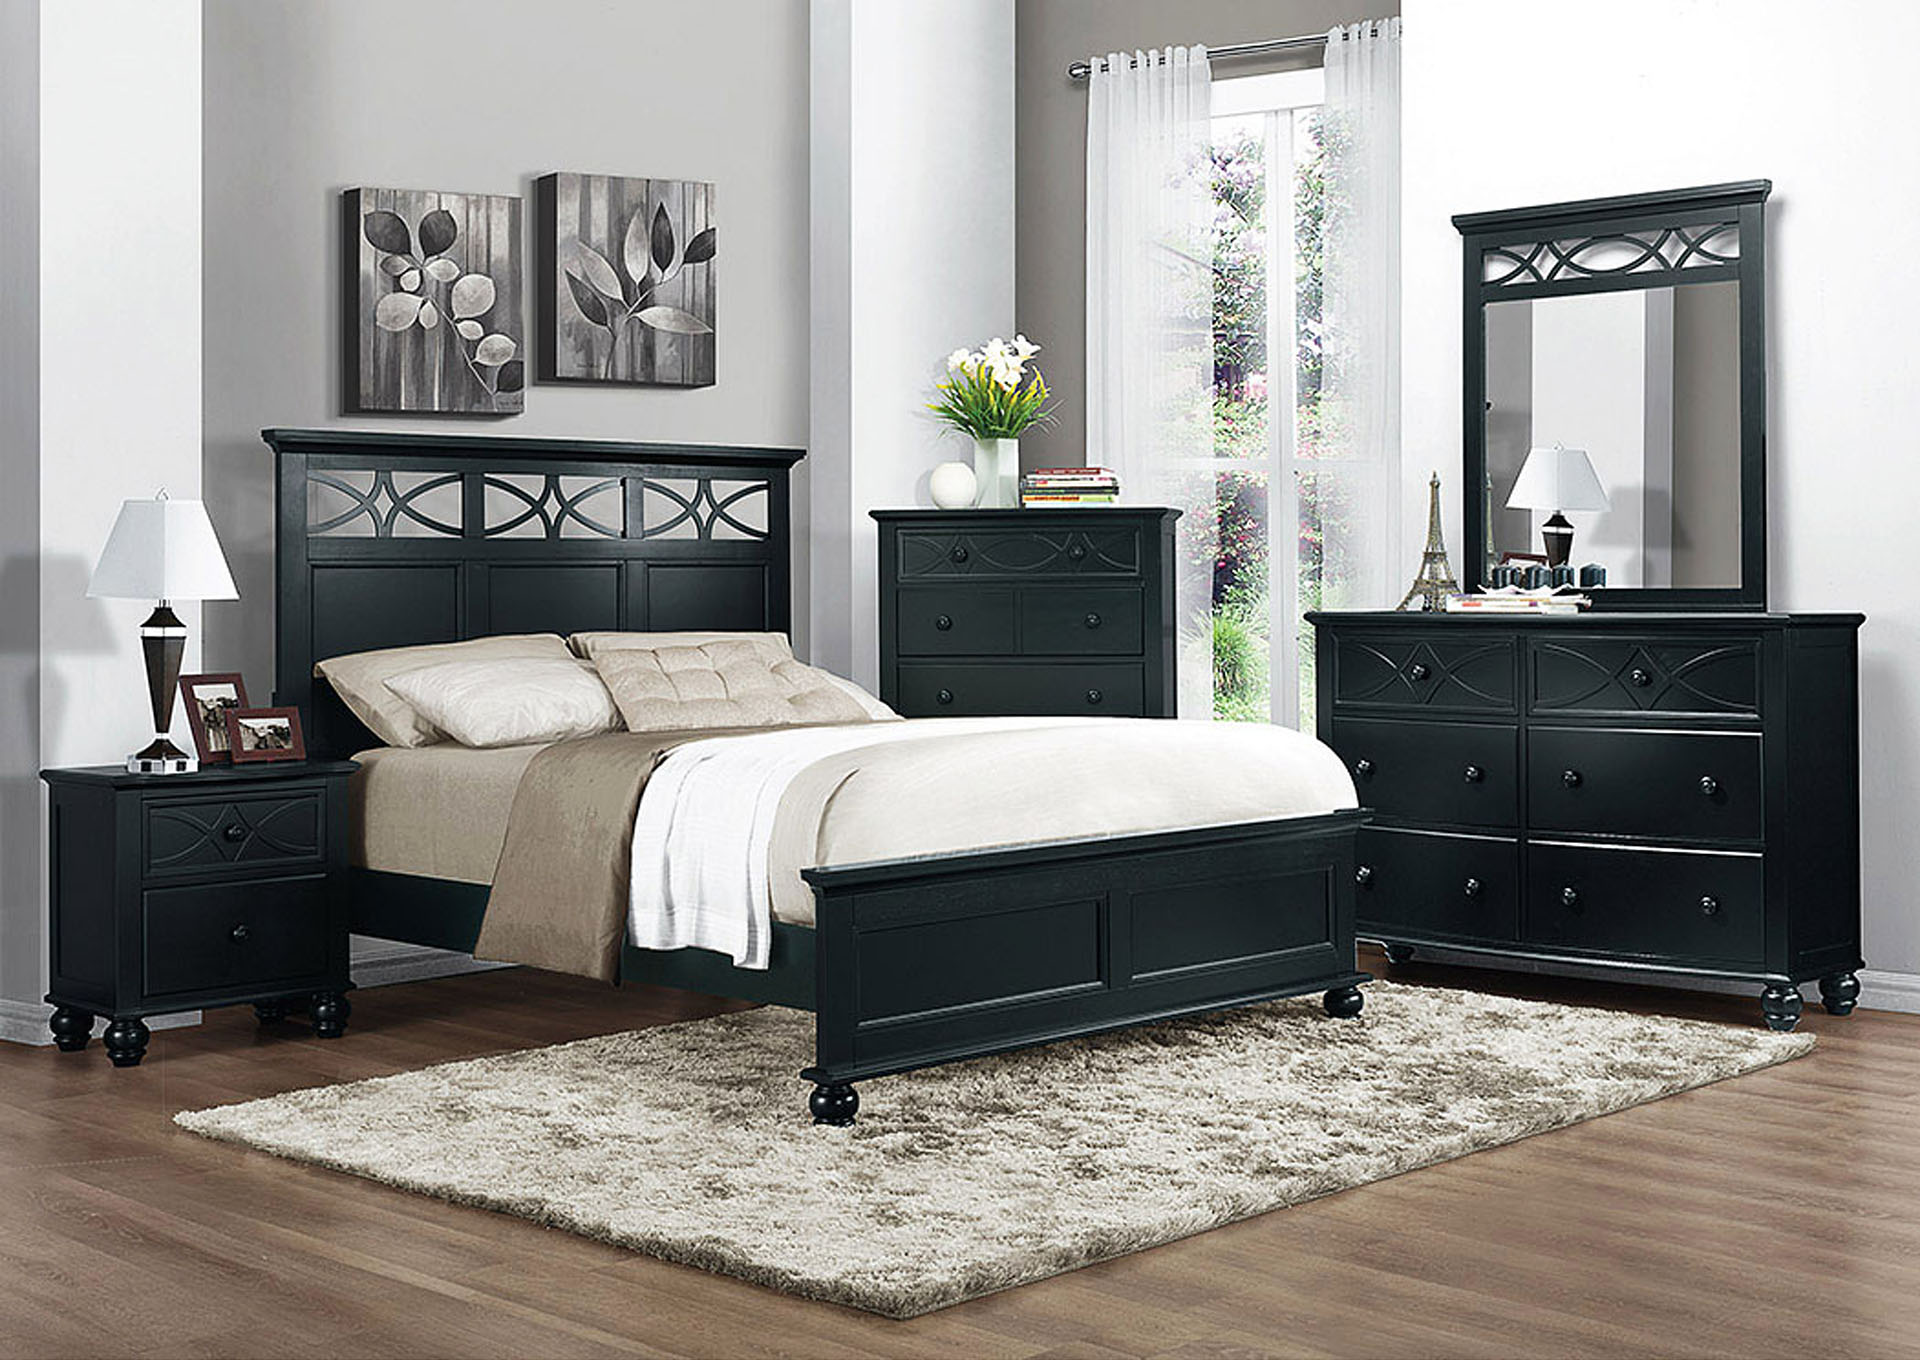 Sanibel Black Twin Panel Bed,Homelegance